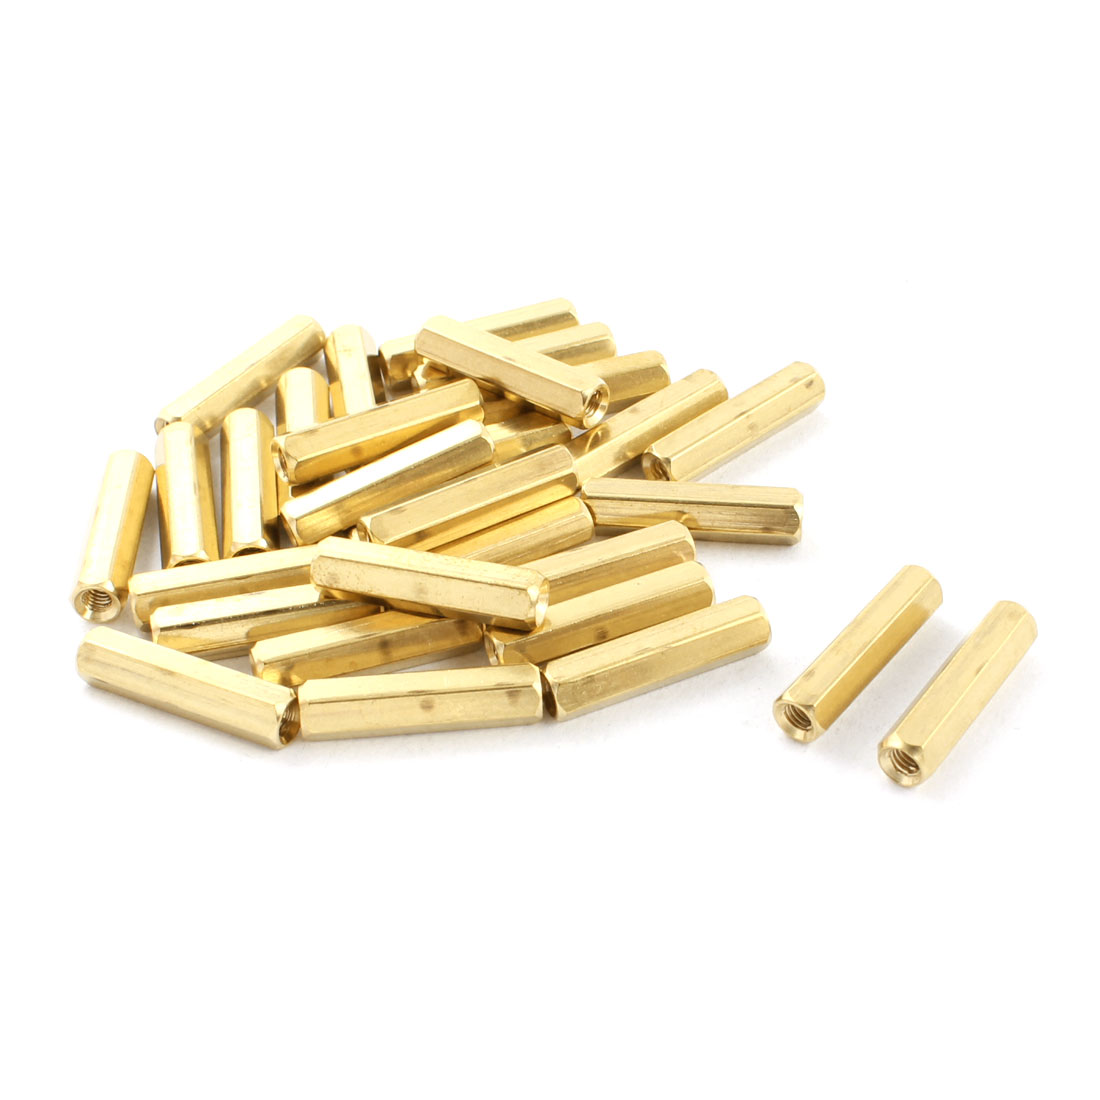 30Pcs M3 x 20mm Fmale Thread Dual Ends Brass Pillar Standoff Hexagonal Nut Spacer